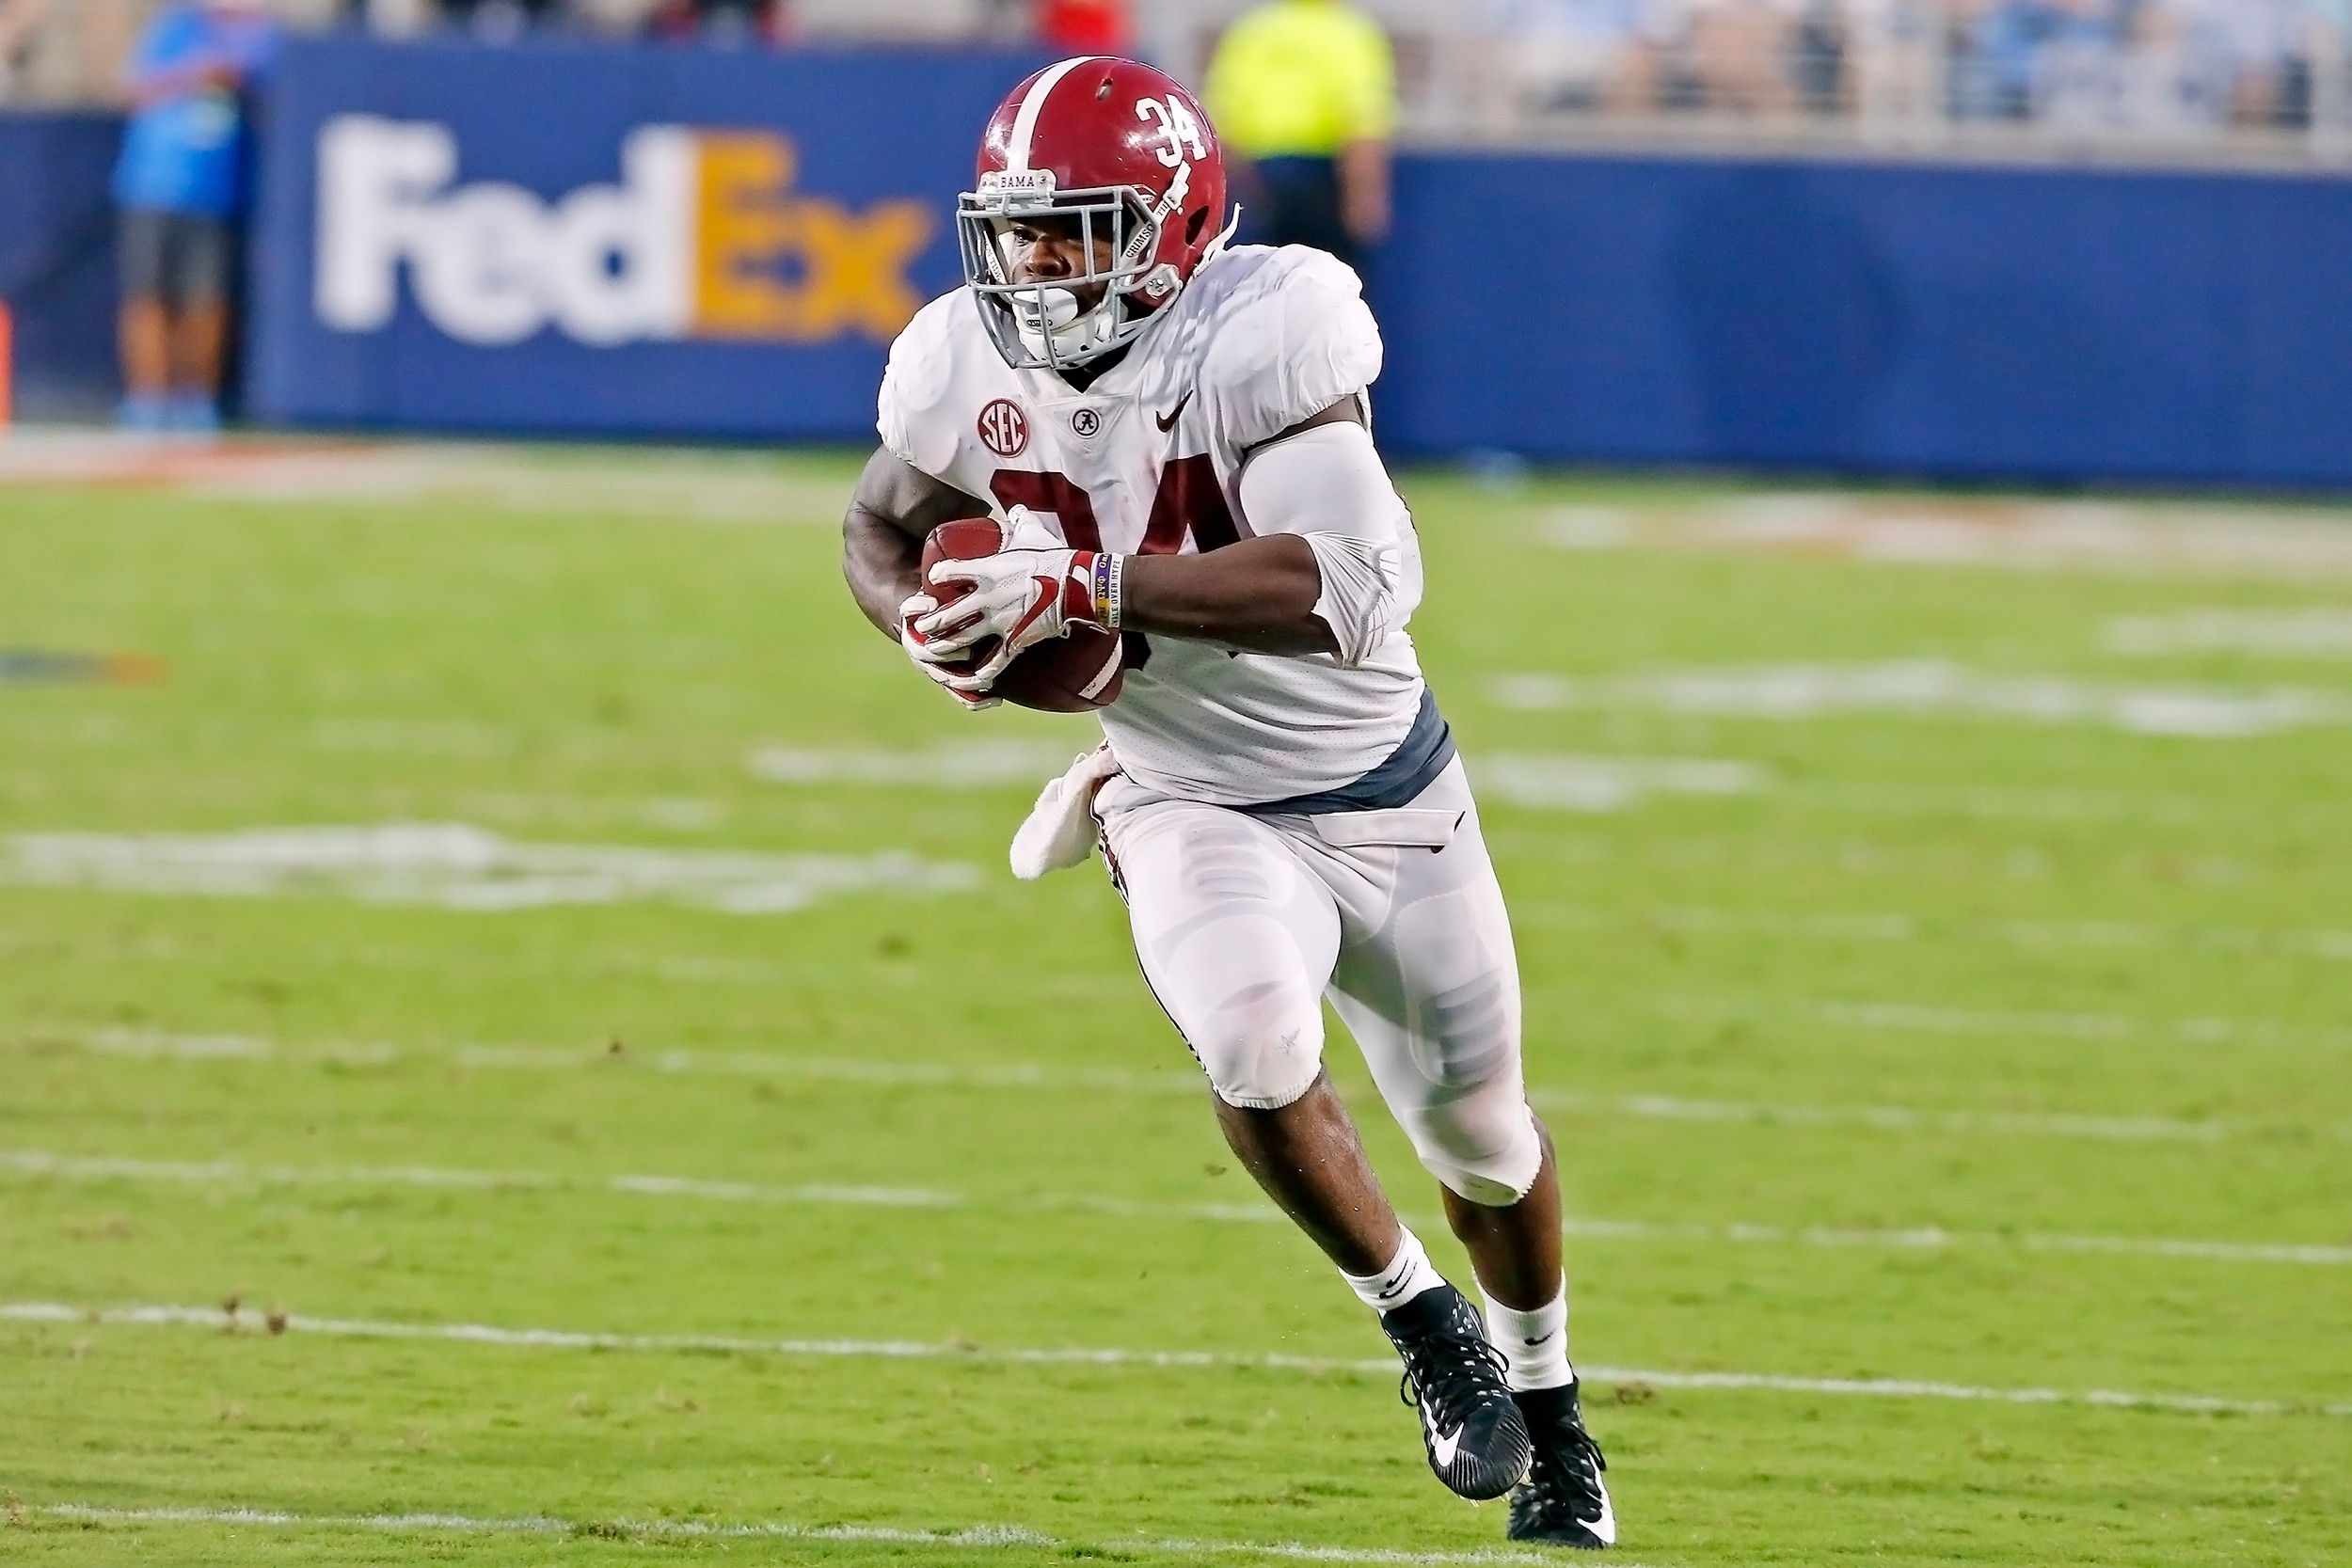 Alabama Crimson Tide running back Damien Harris (34) rushes for a first down during the game between the University of Alabama and Ole Miss at Vaught-Hemingway Stadium. Jason Clark / Daily Mountain Eagle